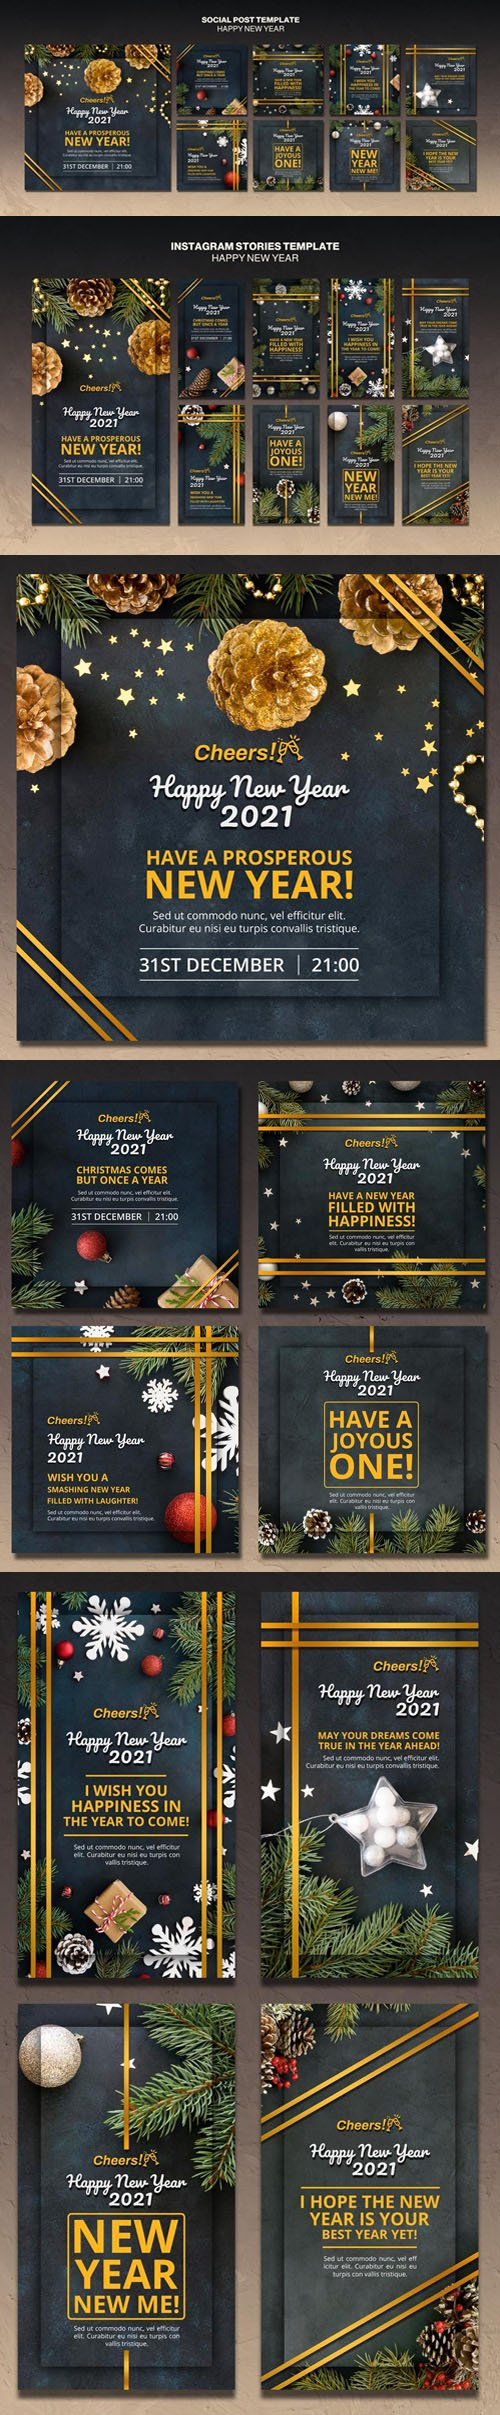 Happy New Year 2021 Social Media Posts & Instagram Stories PSD Templates